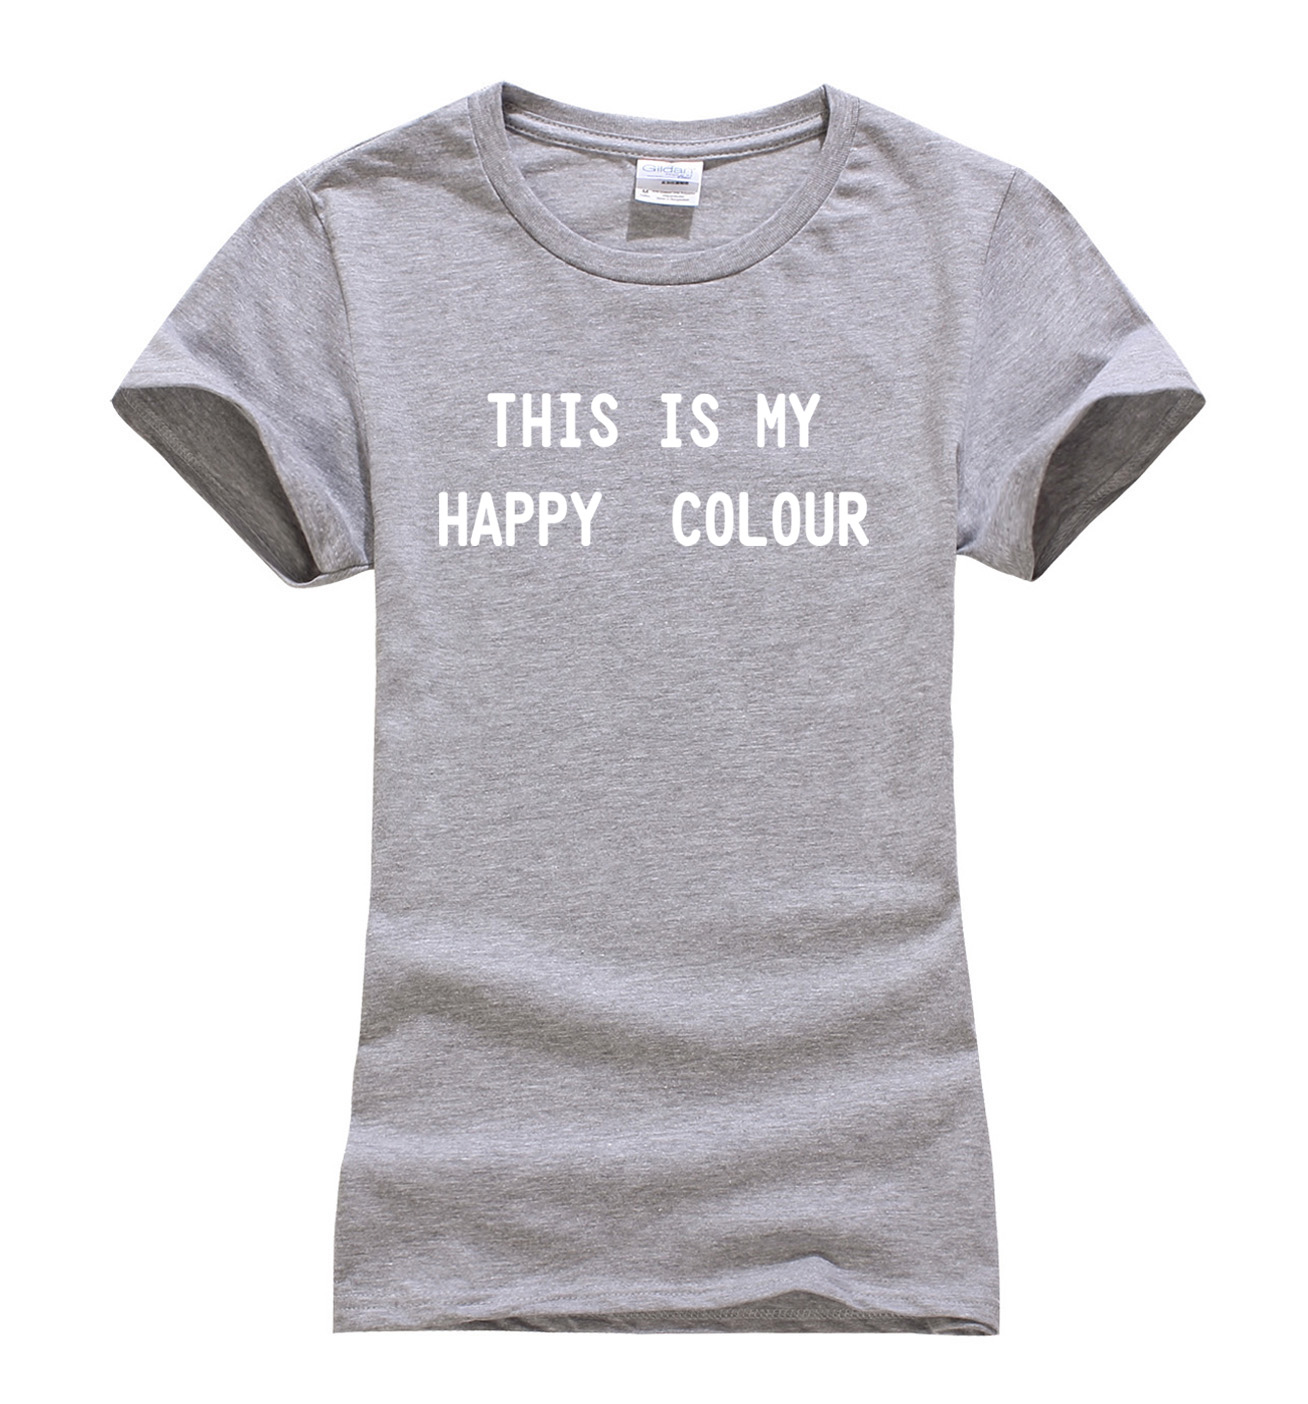 Black Is My Happy Color 2019 Summer New Arrival T Shirt Women Harajuku Tops Funny Femme Brand Black White Slim Fit T-shirt Women